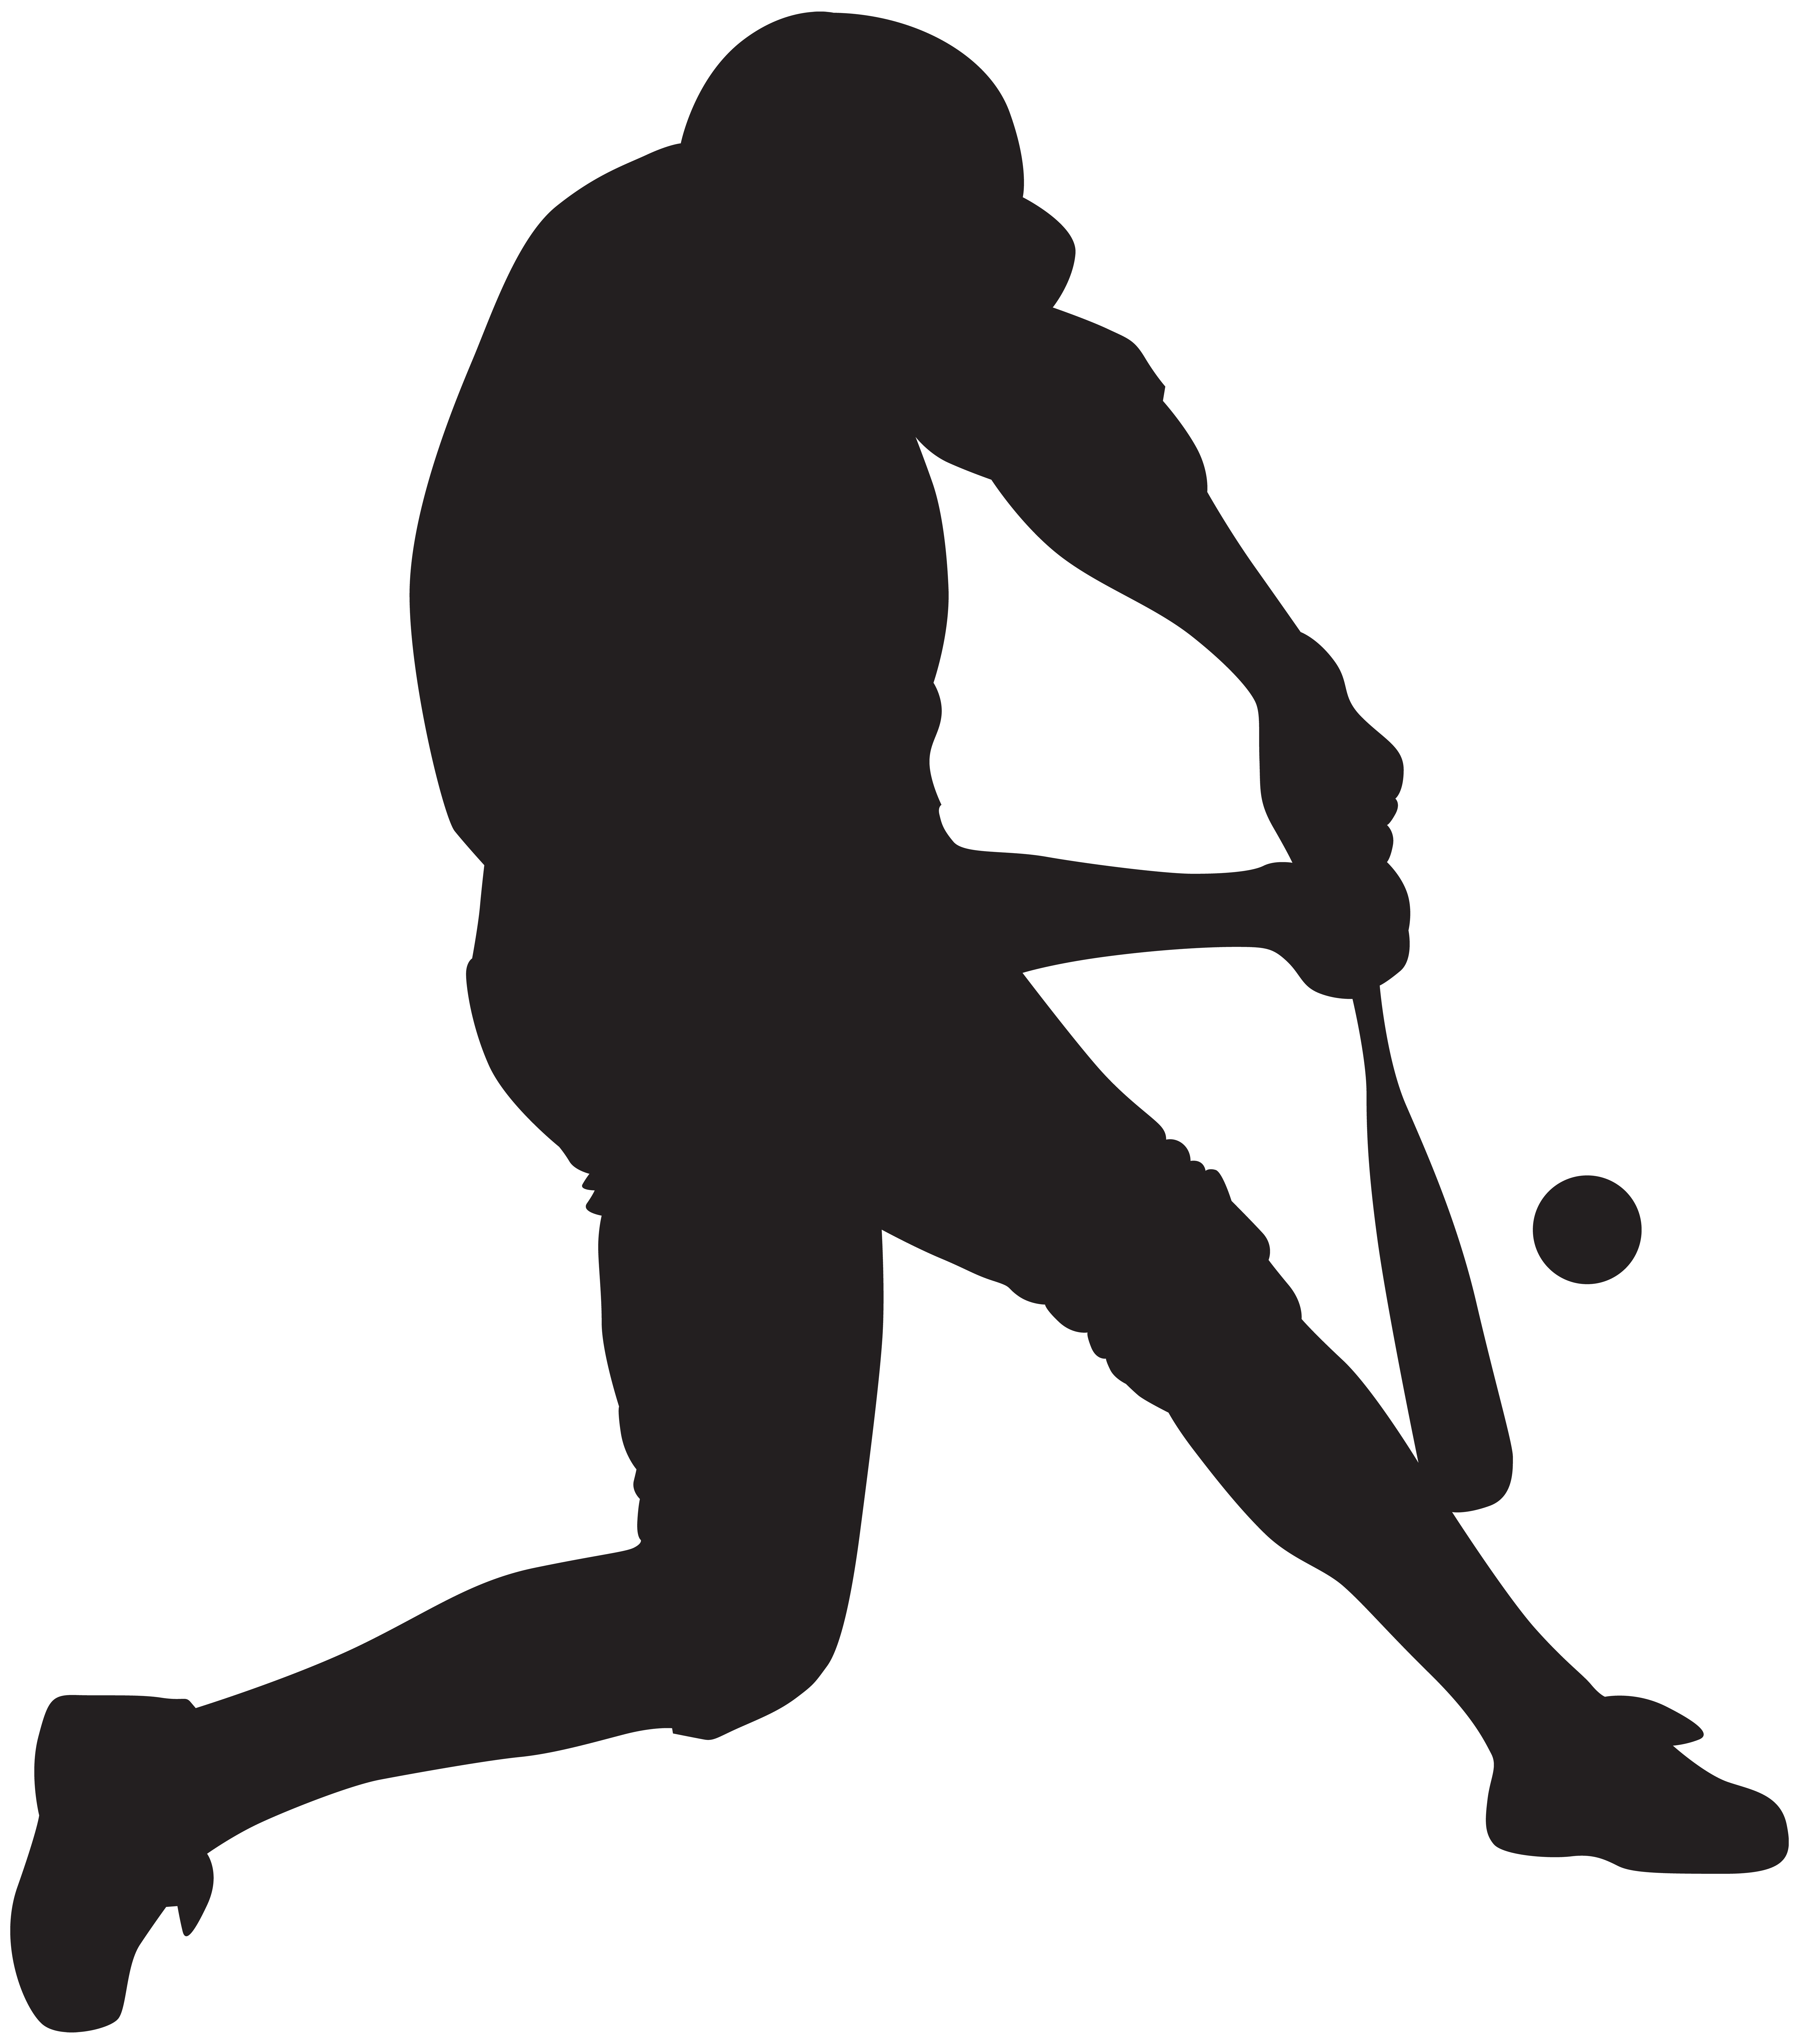 Hockey clipart silhouette. Baseball player png clip